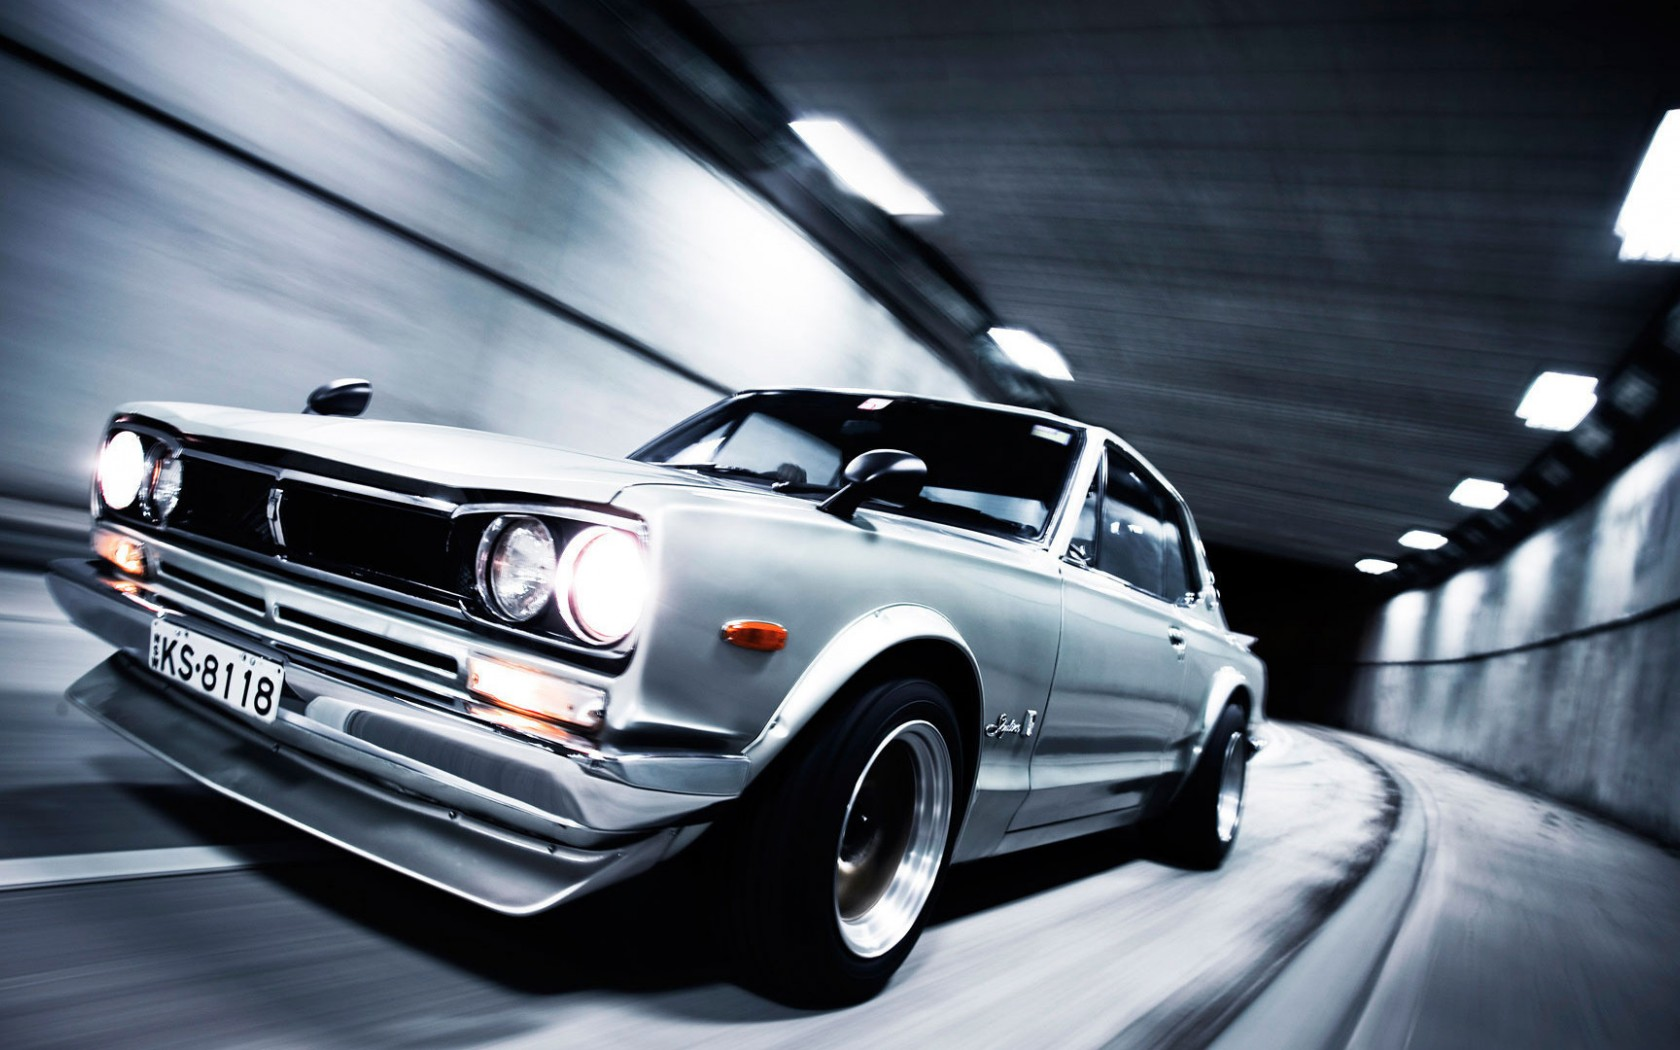 Car Wallpapers 3840x1200 Nissan Skyline Gt R Wallpaper And Background Image